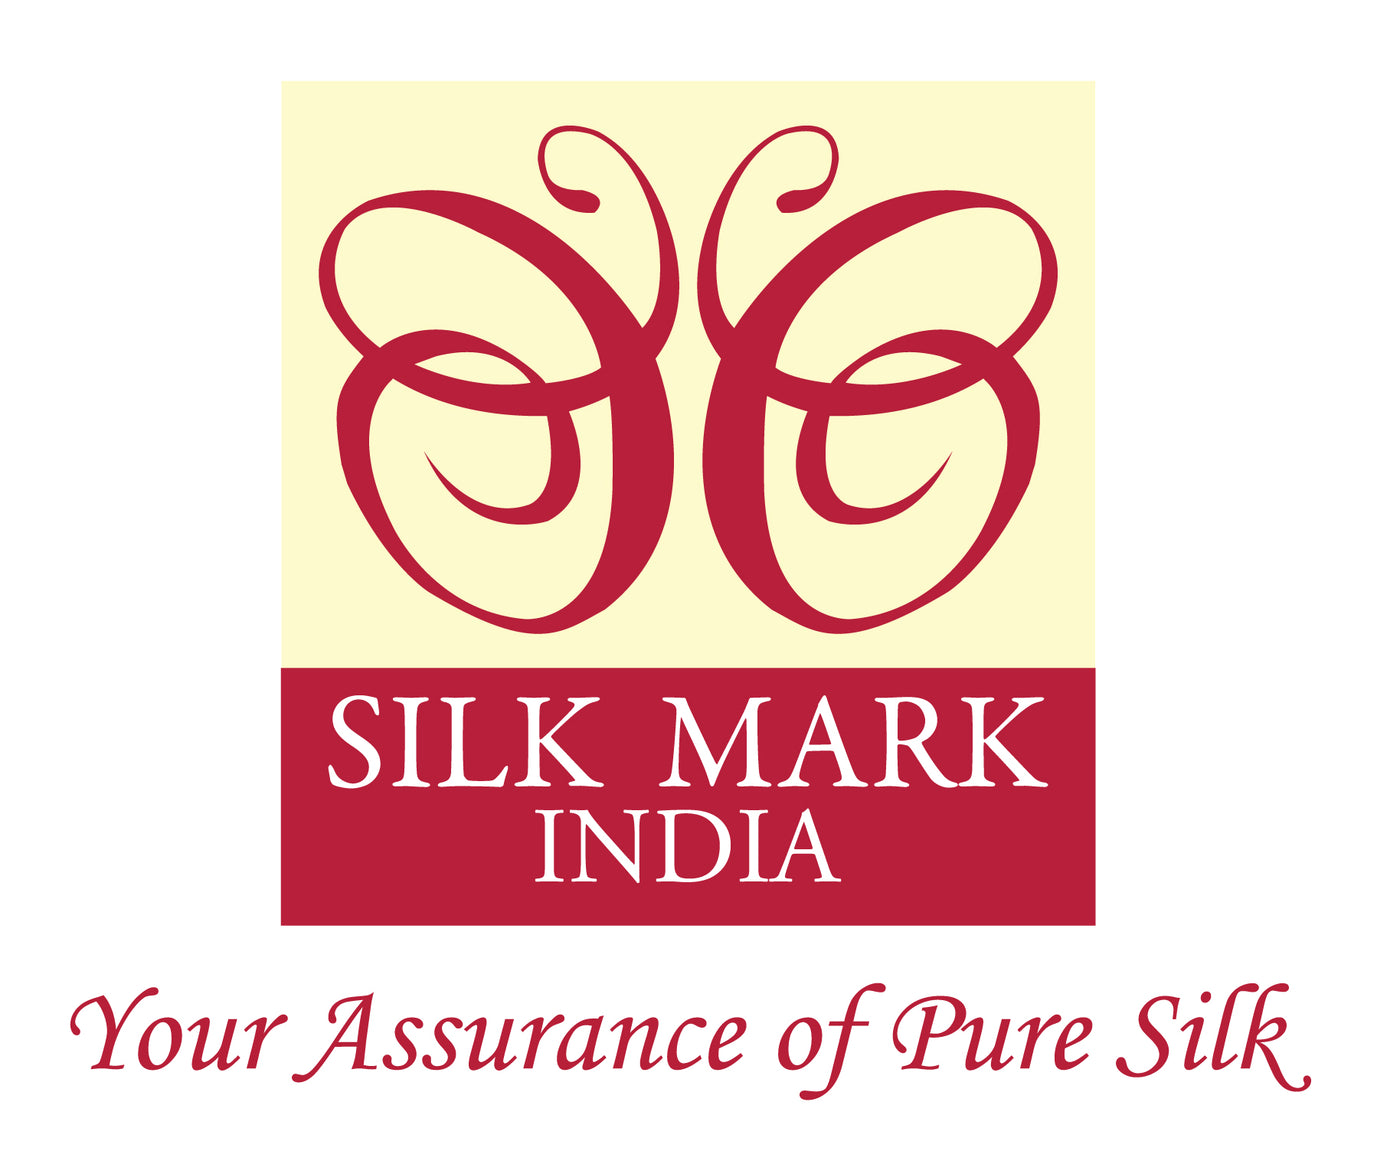 SILK MARK - Your assurance of Pure Silk